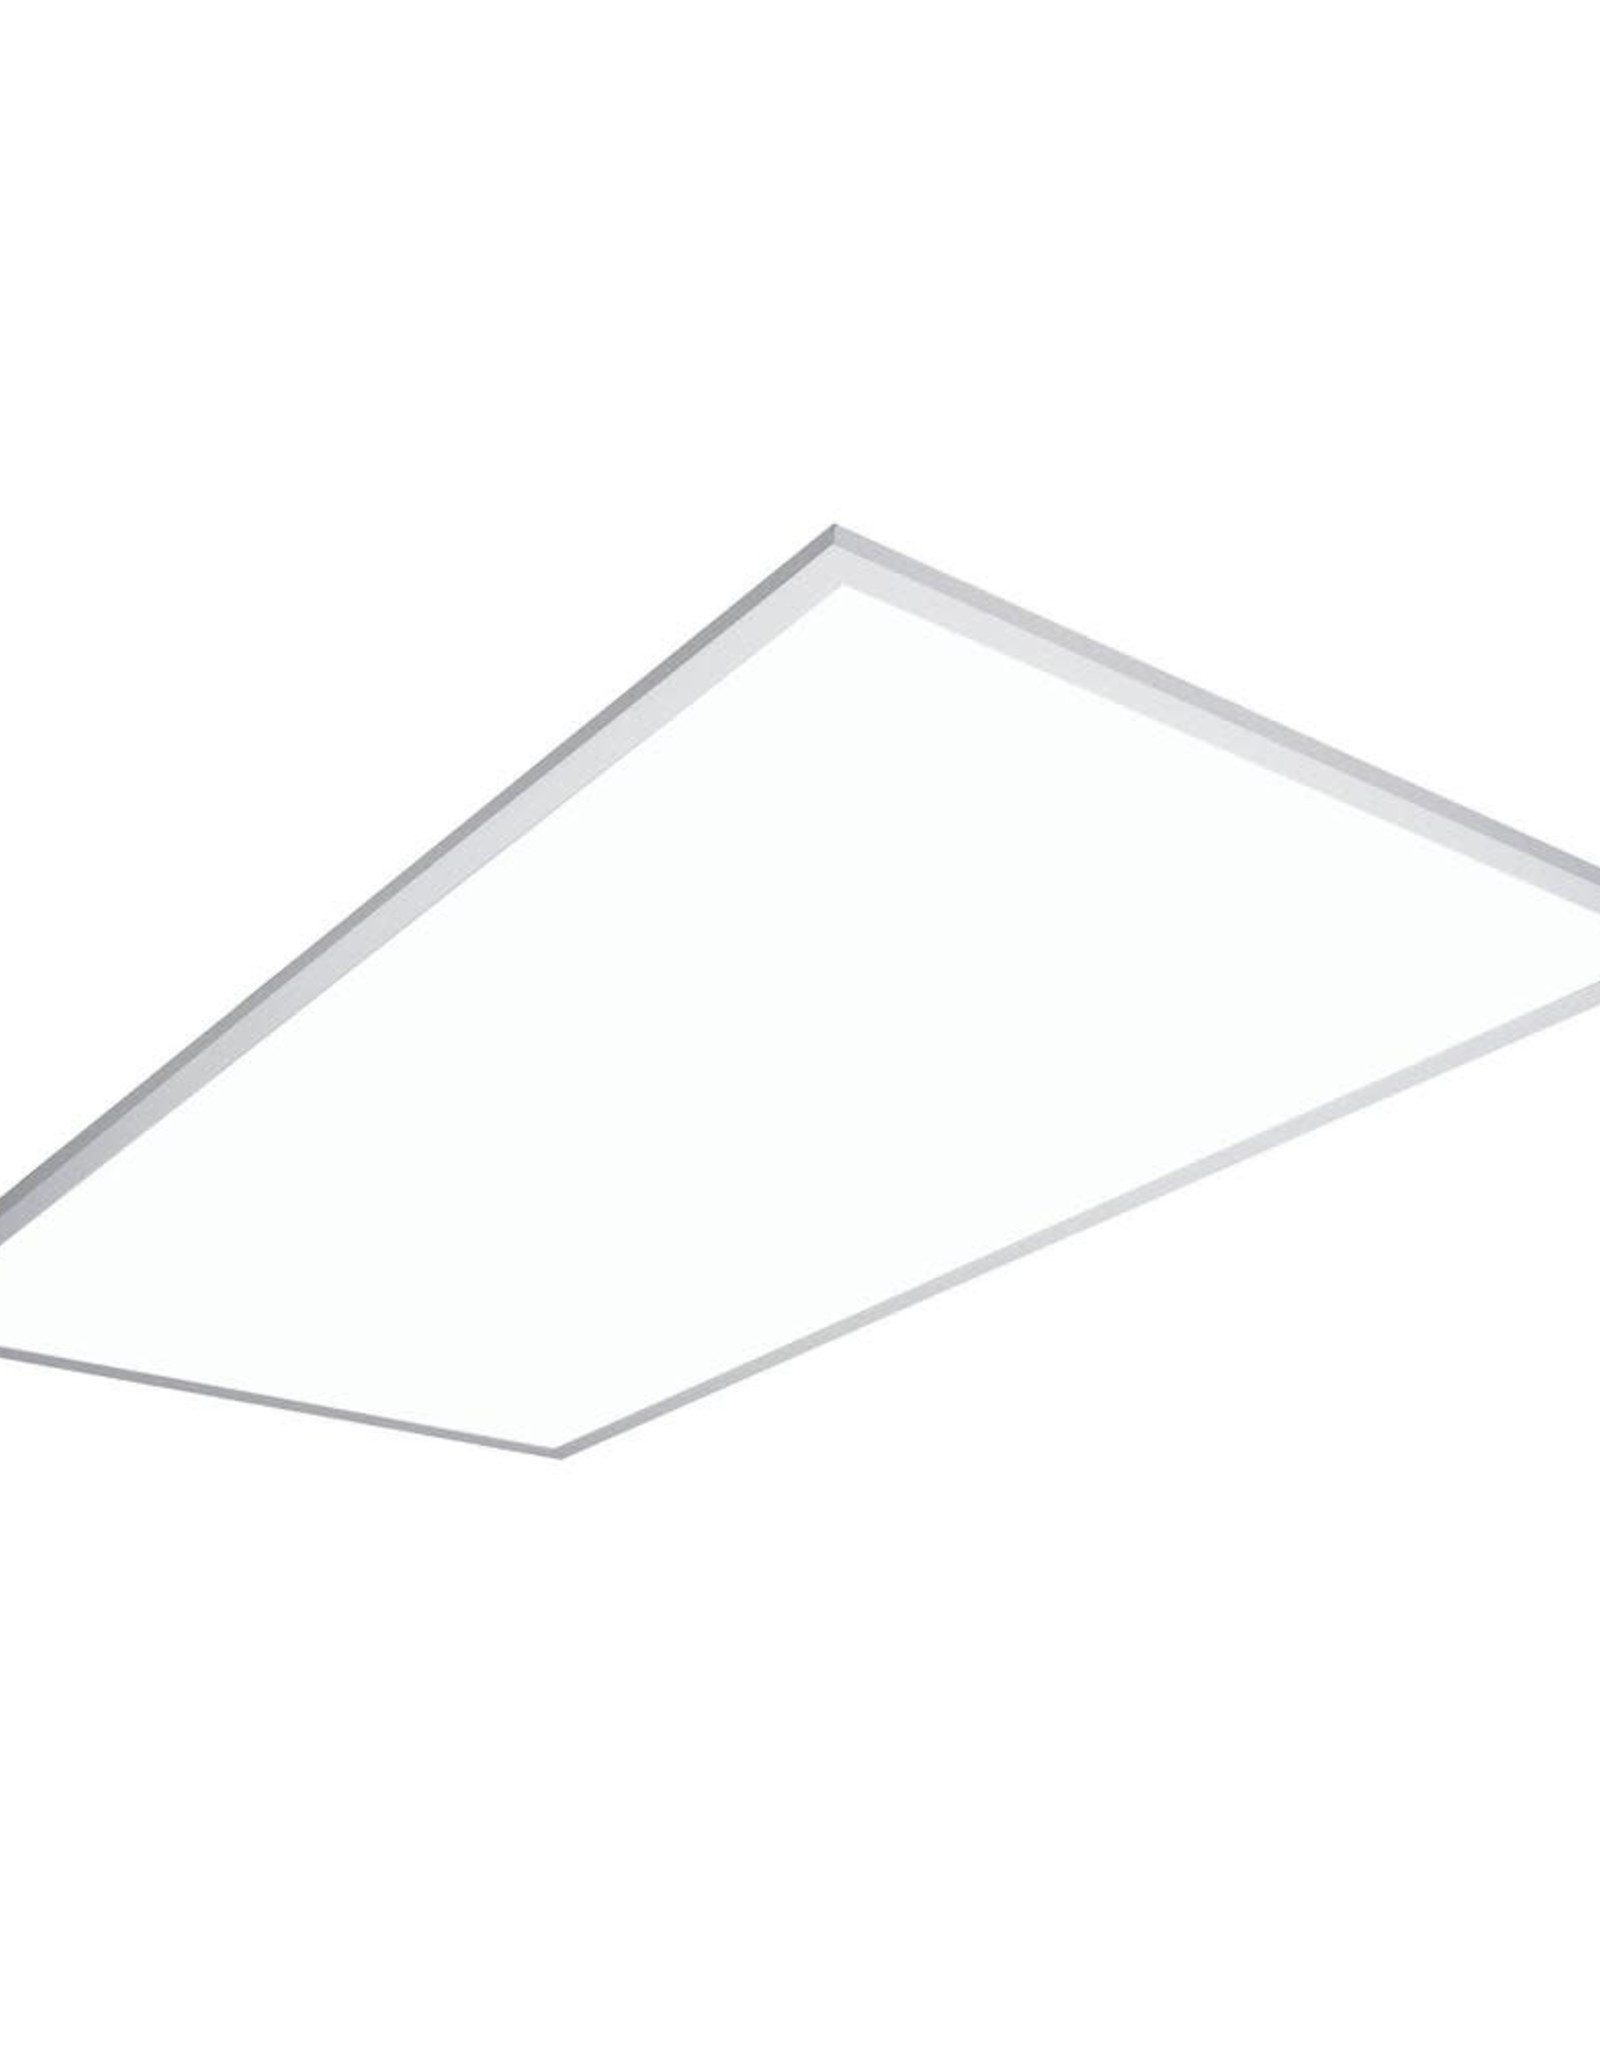 Metalux 2 ft. x 4 ft. White Integrated LED Dimmable Flat Panel Light with Selectable Color Temperature